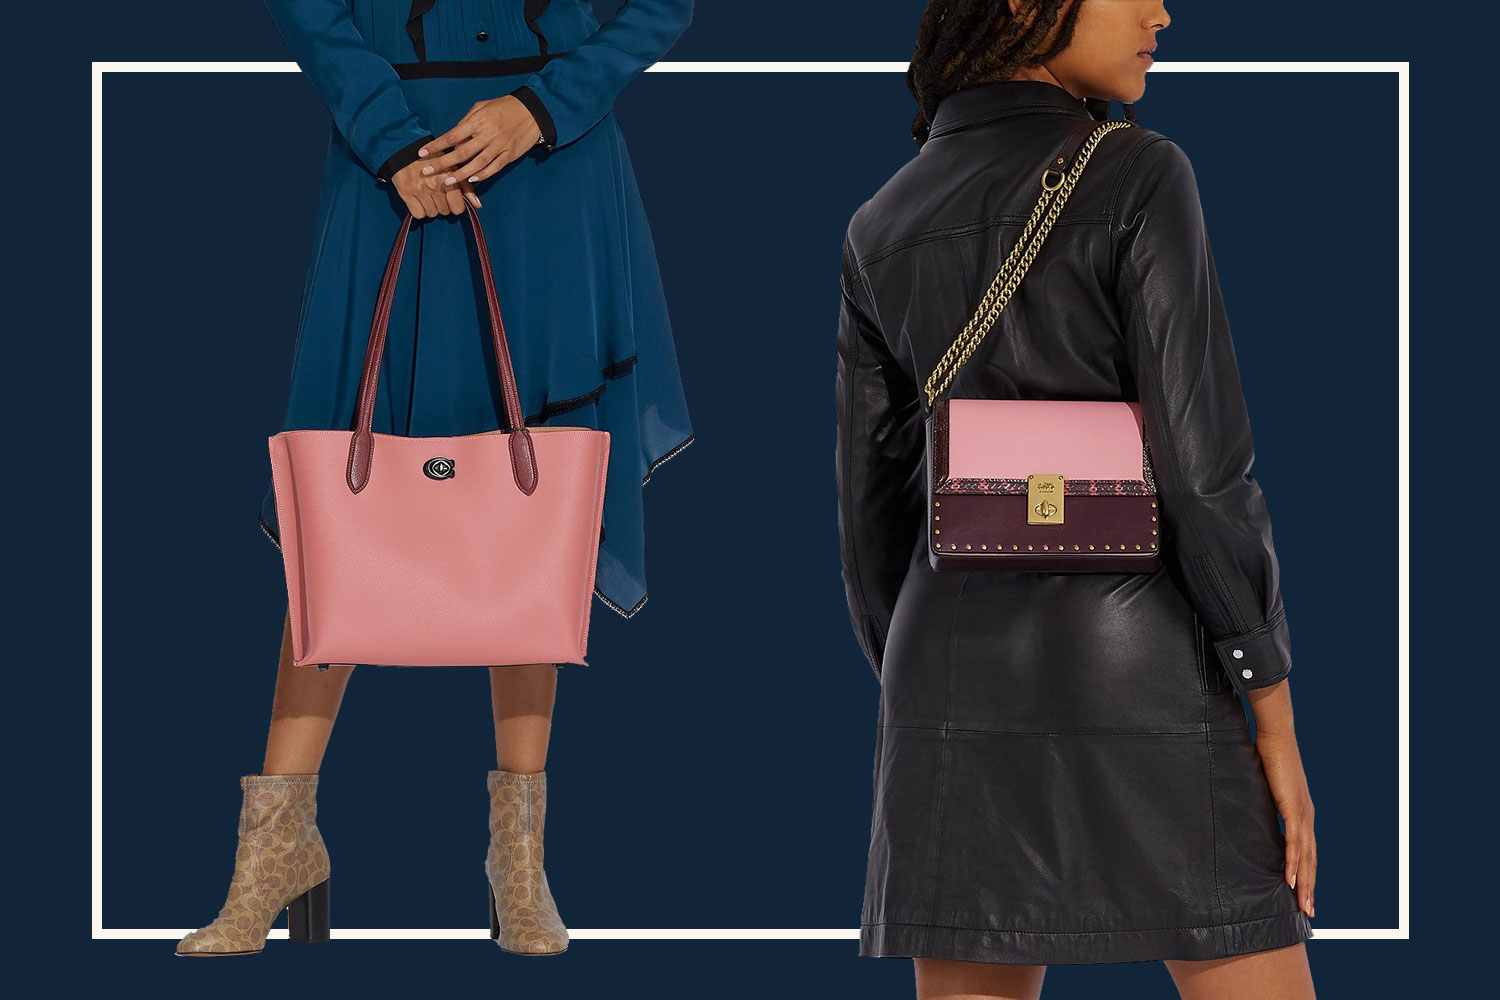 Macy's Just Put Hundreds of Coach Bags on Sale for up to 50% Off